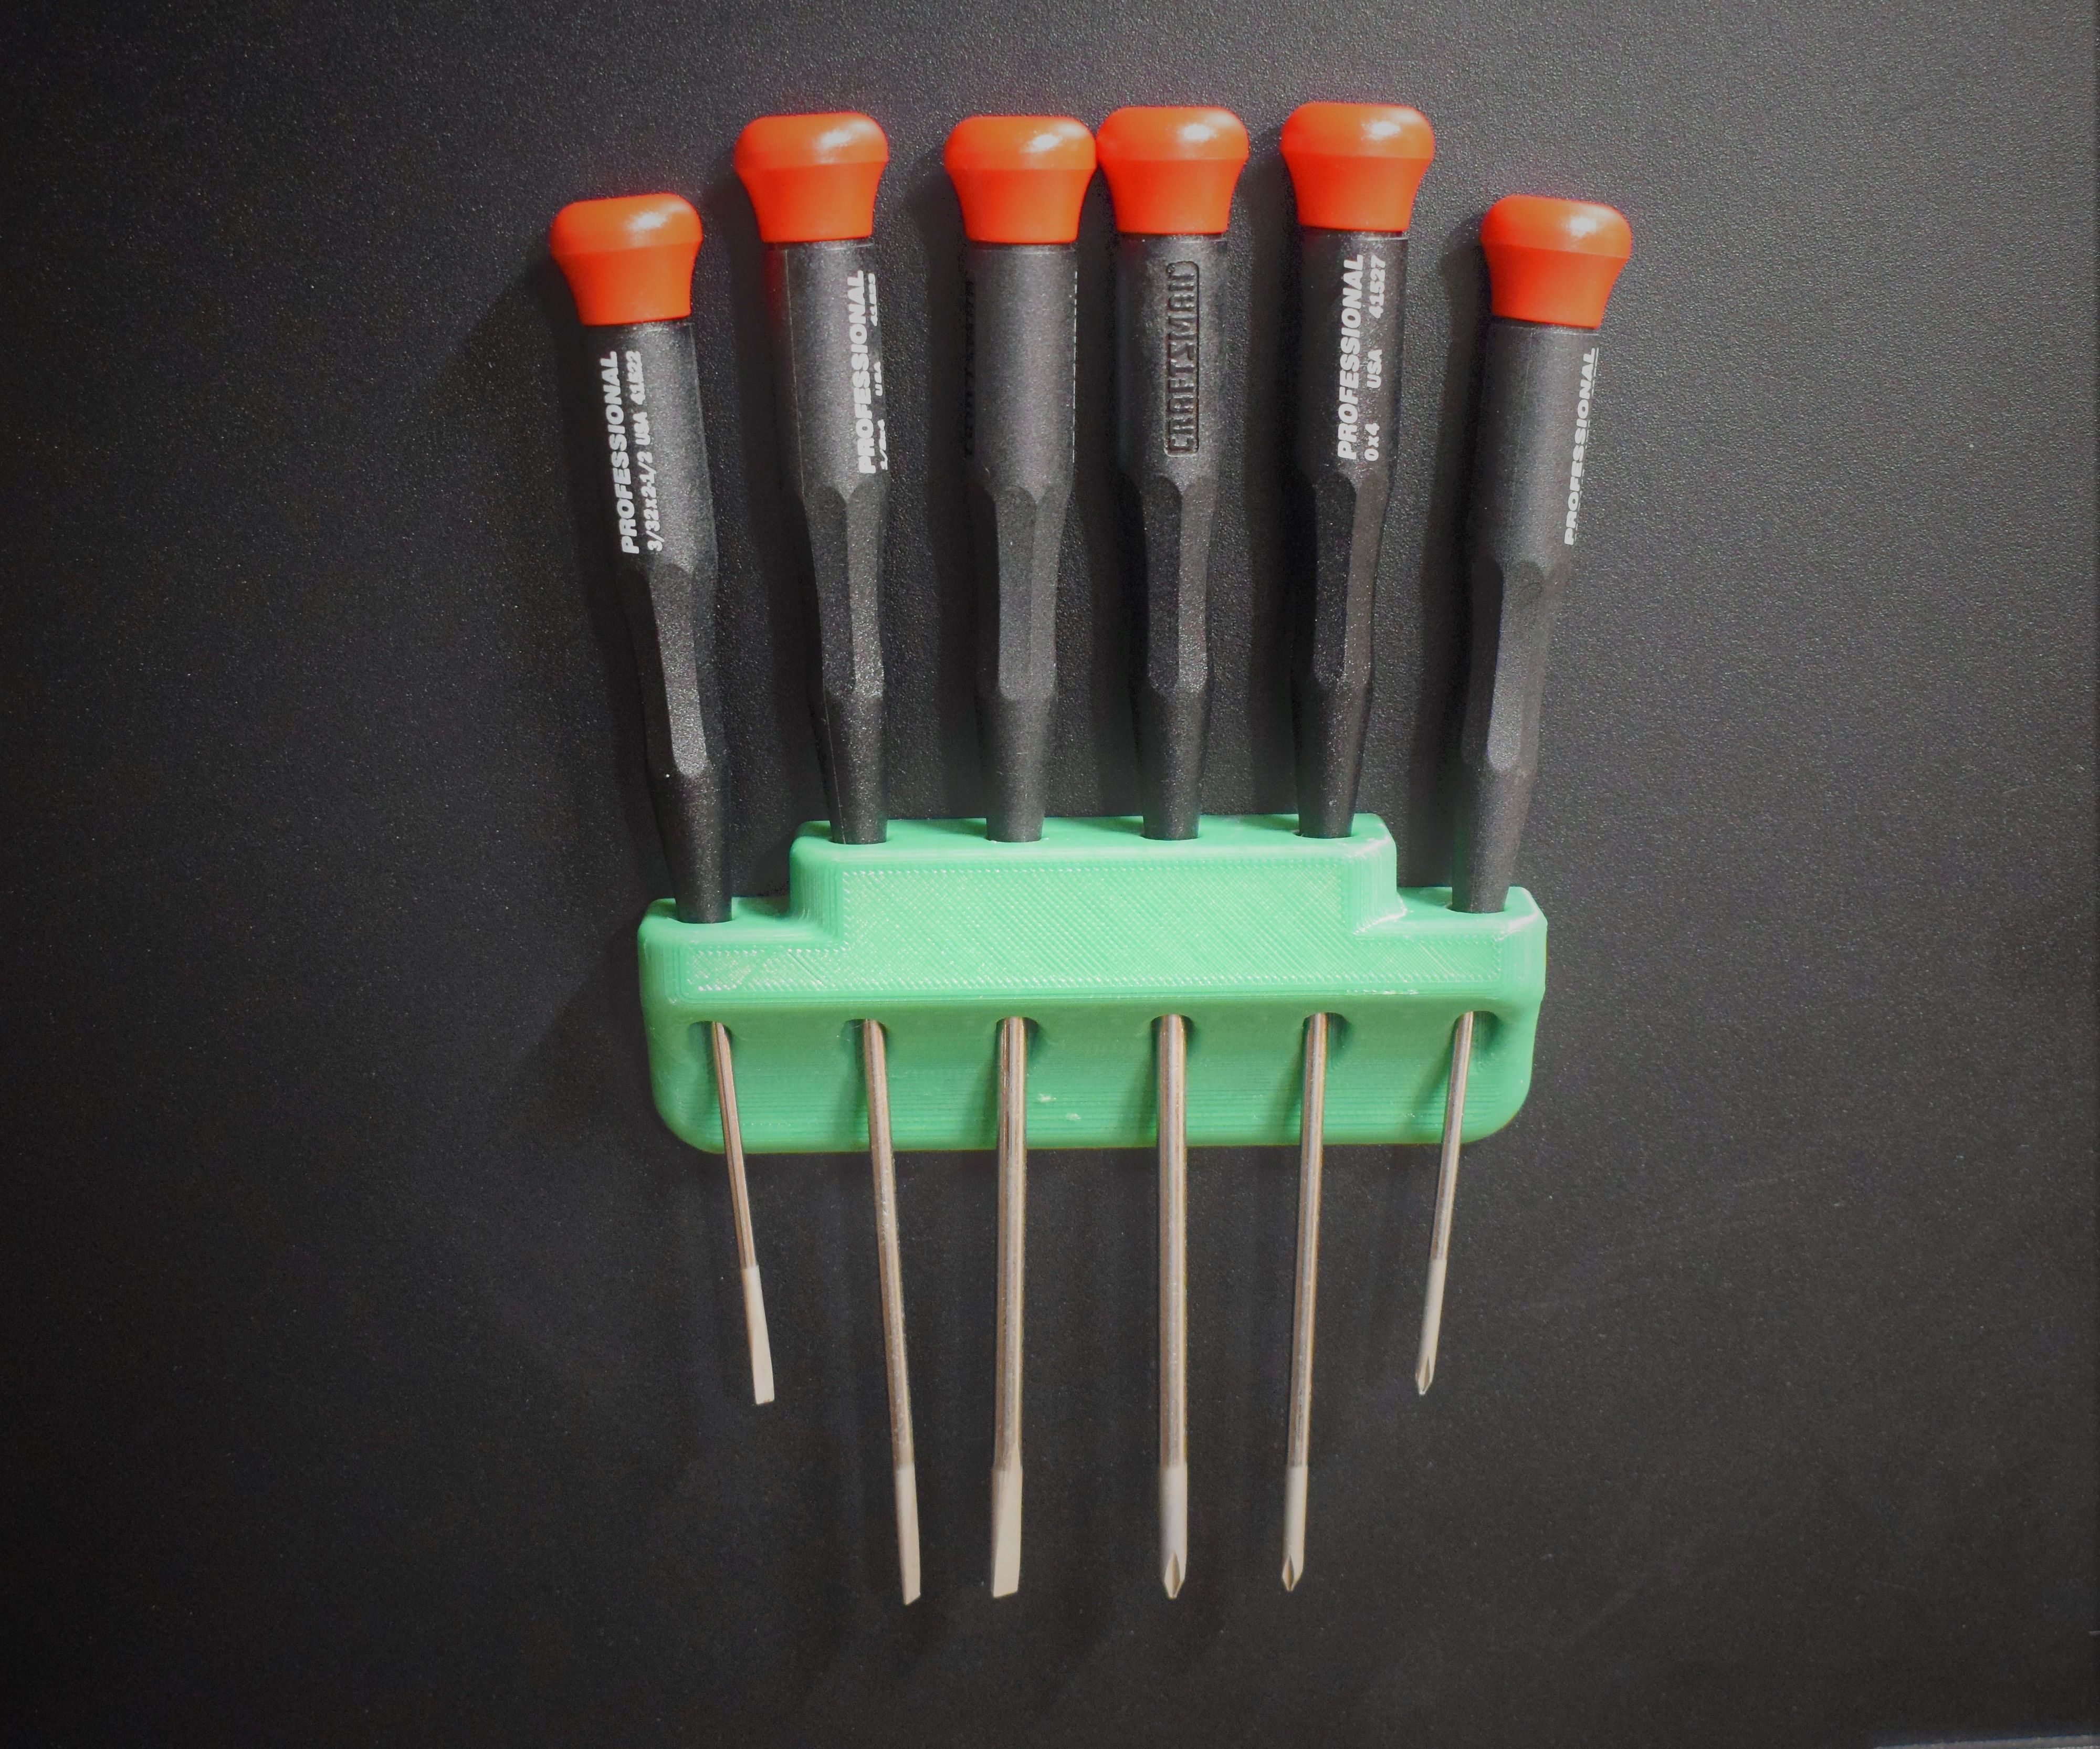 How to Make a 3D Printed Screwdriver Caddy Using Fusion 360